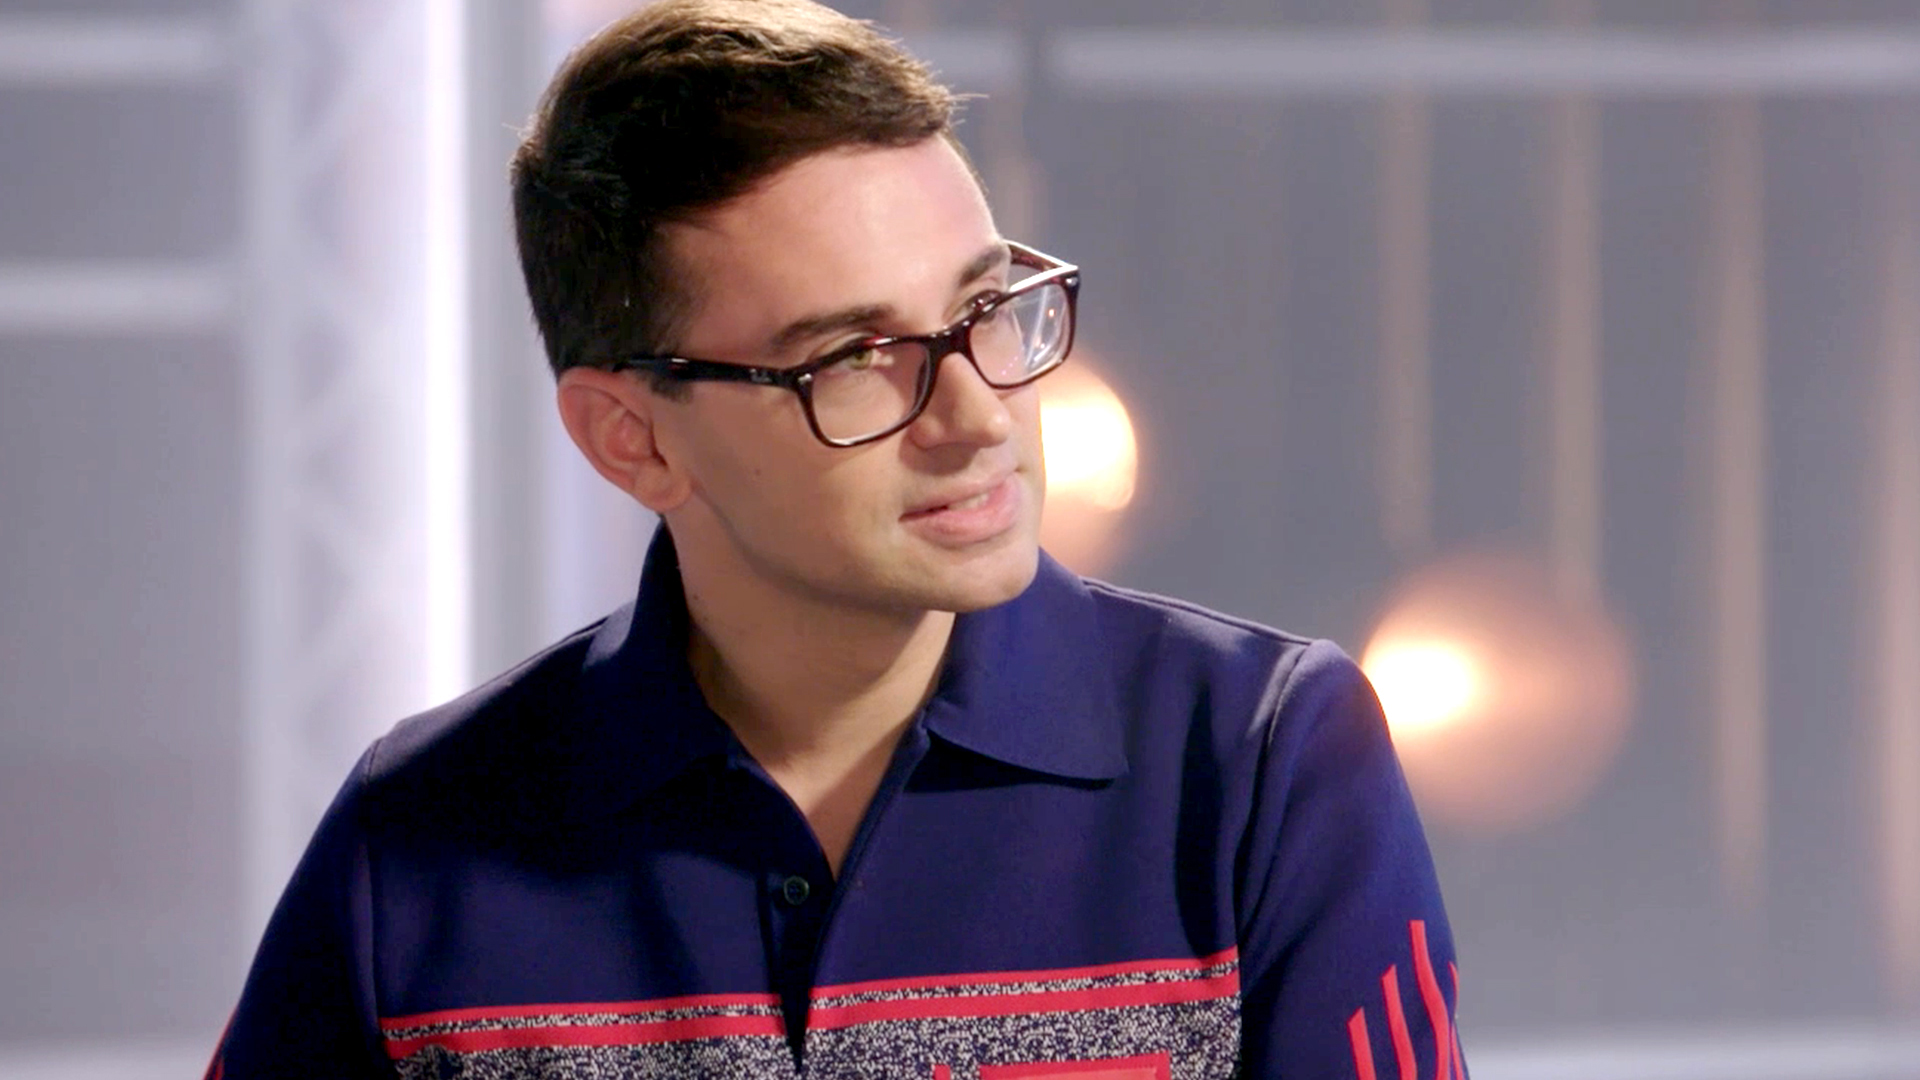 Christian Siriano Reveals the Biggest Setback in His Career